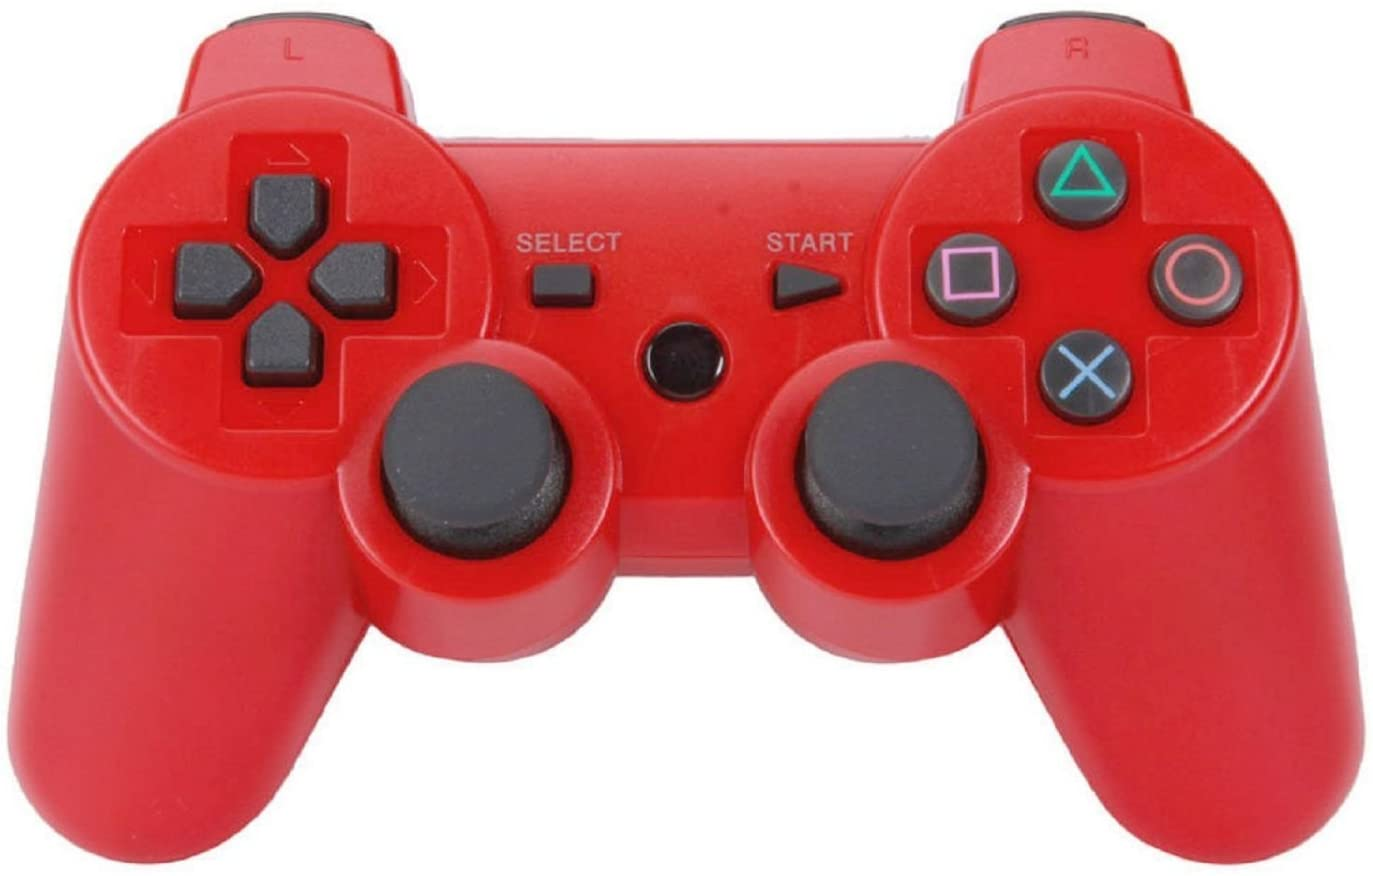 CRS Hot Dragonpadaccessory-experts Rumble Wireless Bluetooth Controller Gamepads Remotes for the Sony Playstation 3 in Red